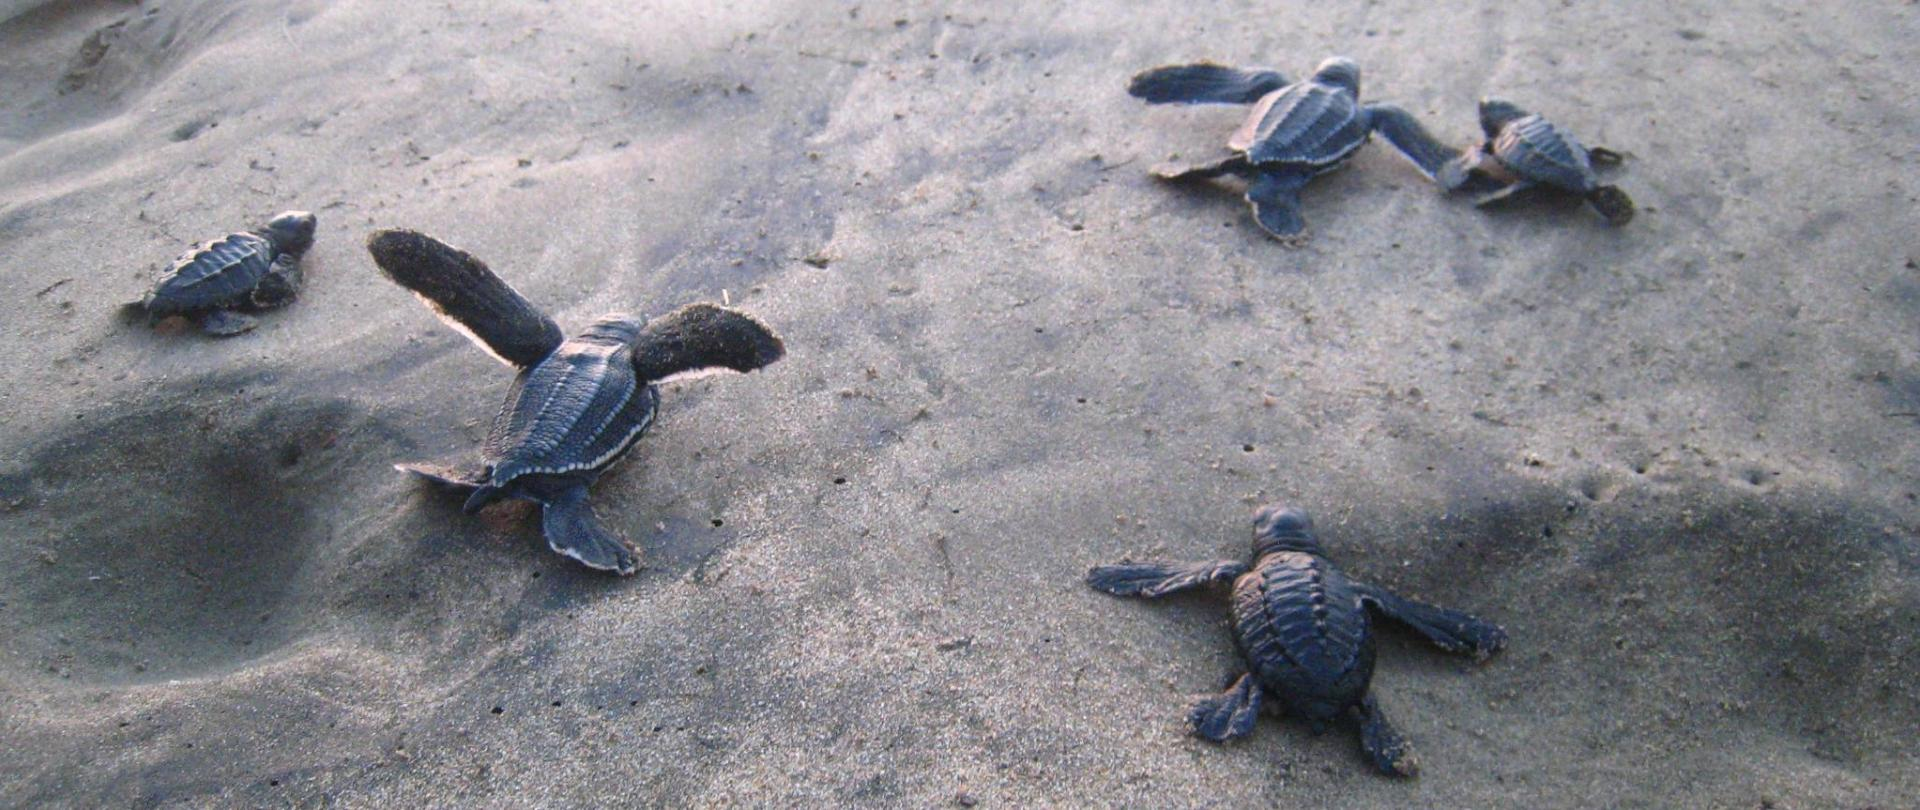 Baby turtles hatching.JPG